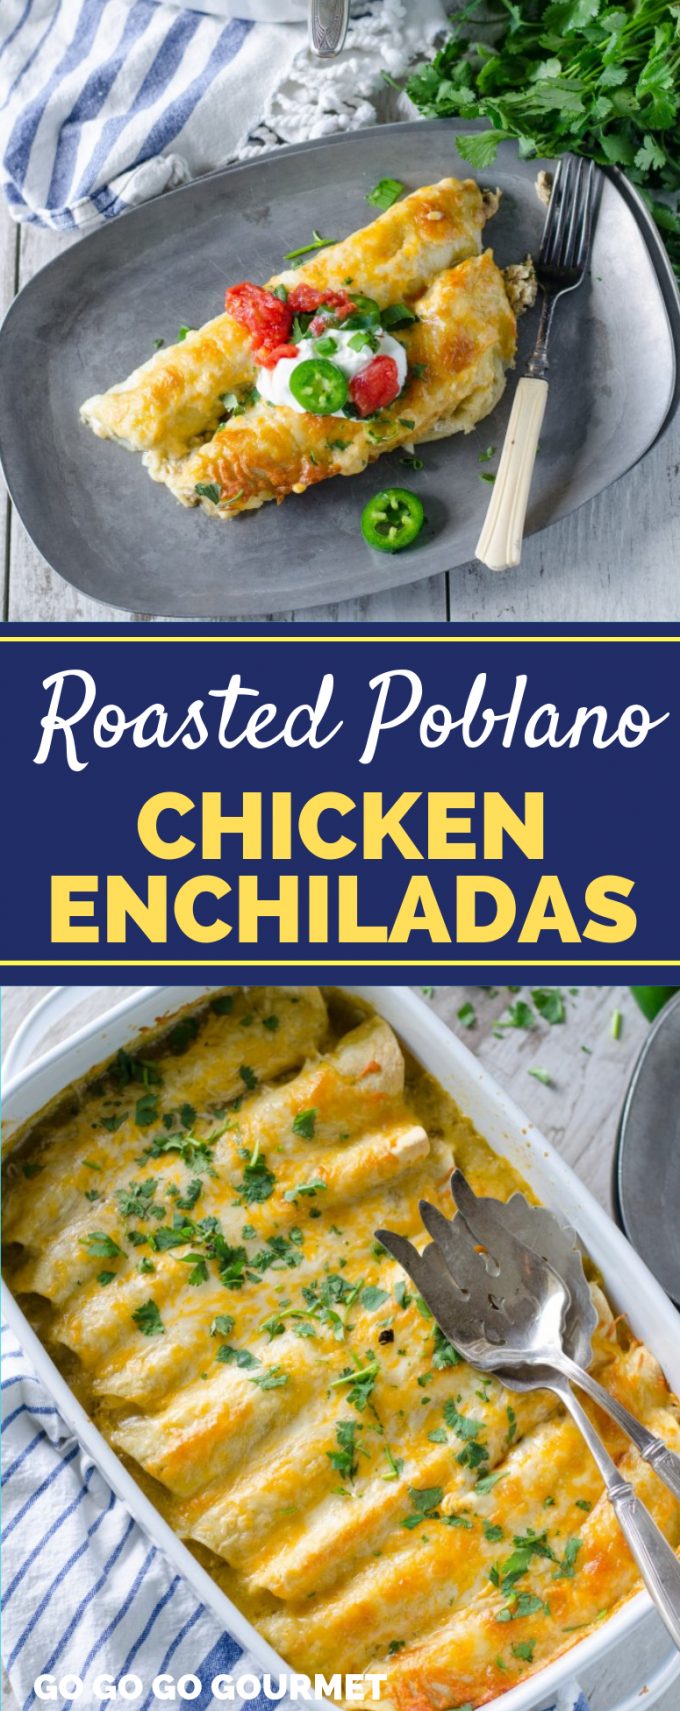 These easy Roasted Poblano Chicken Enchiladas are even better than the Pioneer Woman recipe! This authentic Mexican dish is creamy, delicious, and super easy to make for any weeknight dinner! #gogogogourmet #chickenenchiladas #authenticmexicanfood #mexicanrecipes via @gogogogourmet